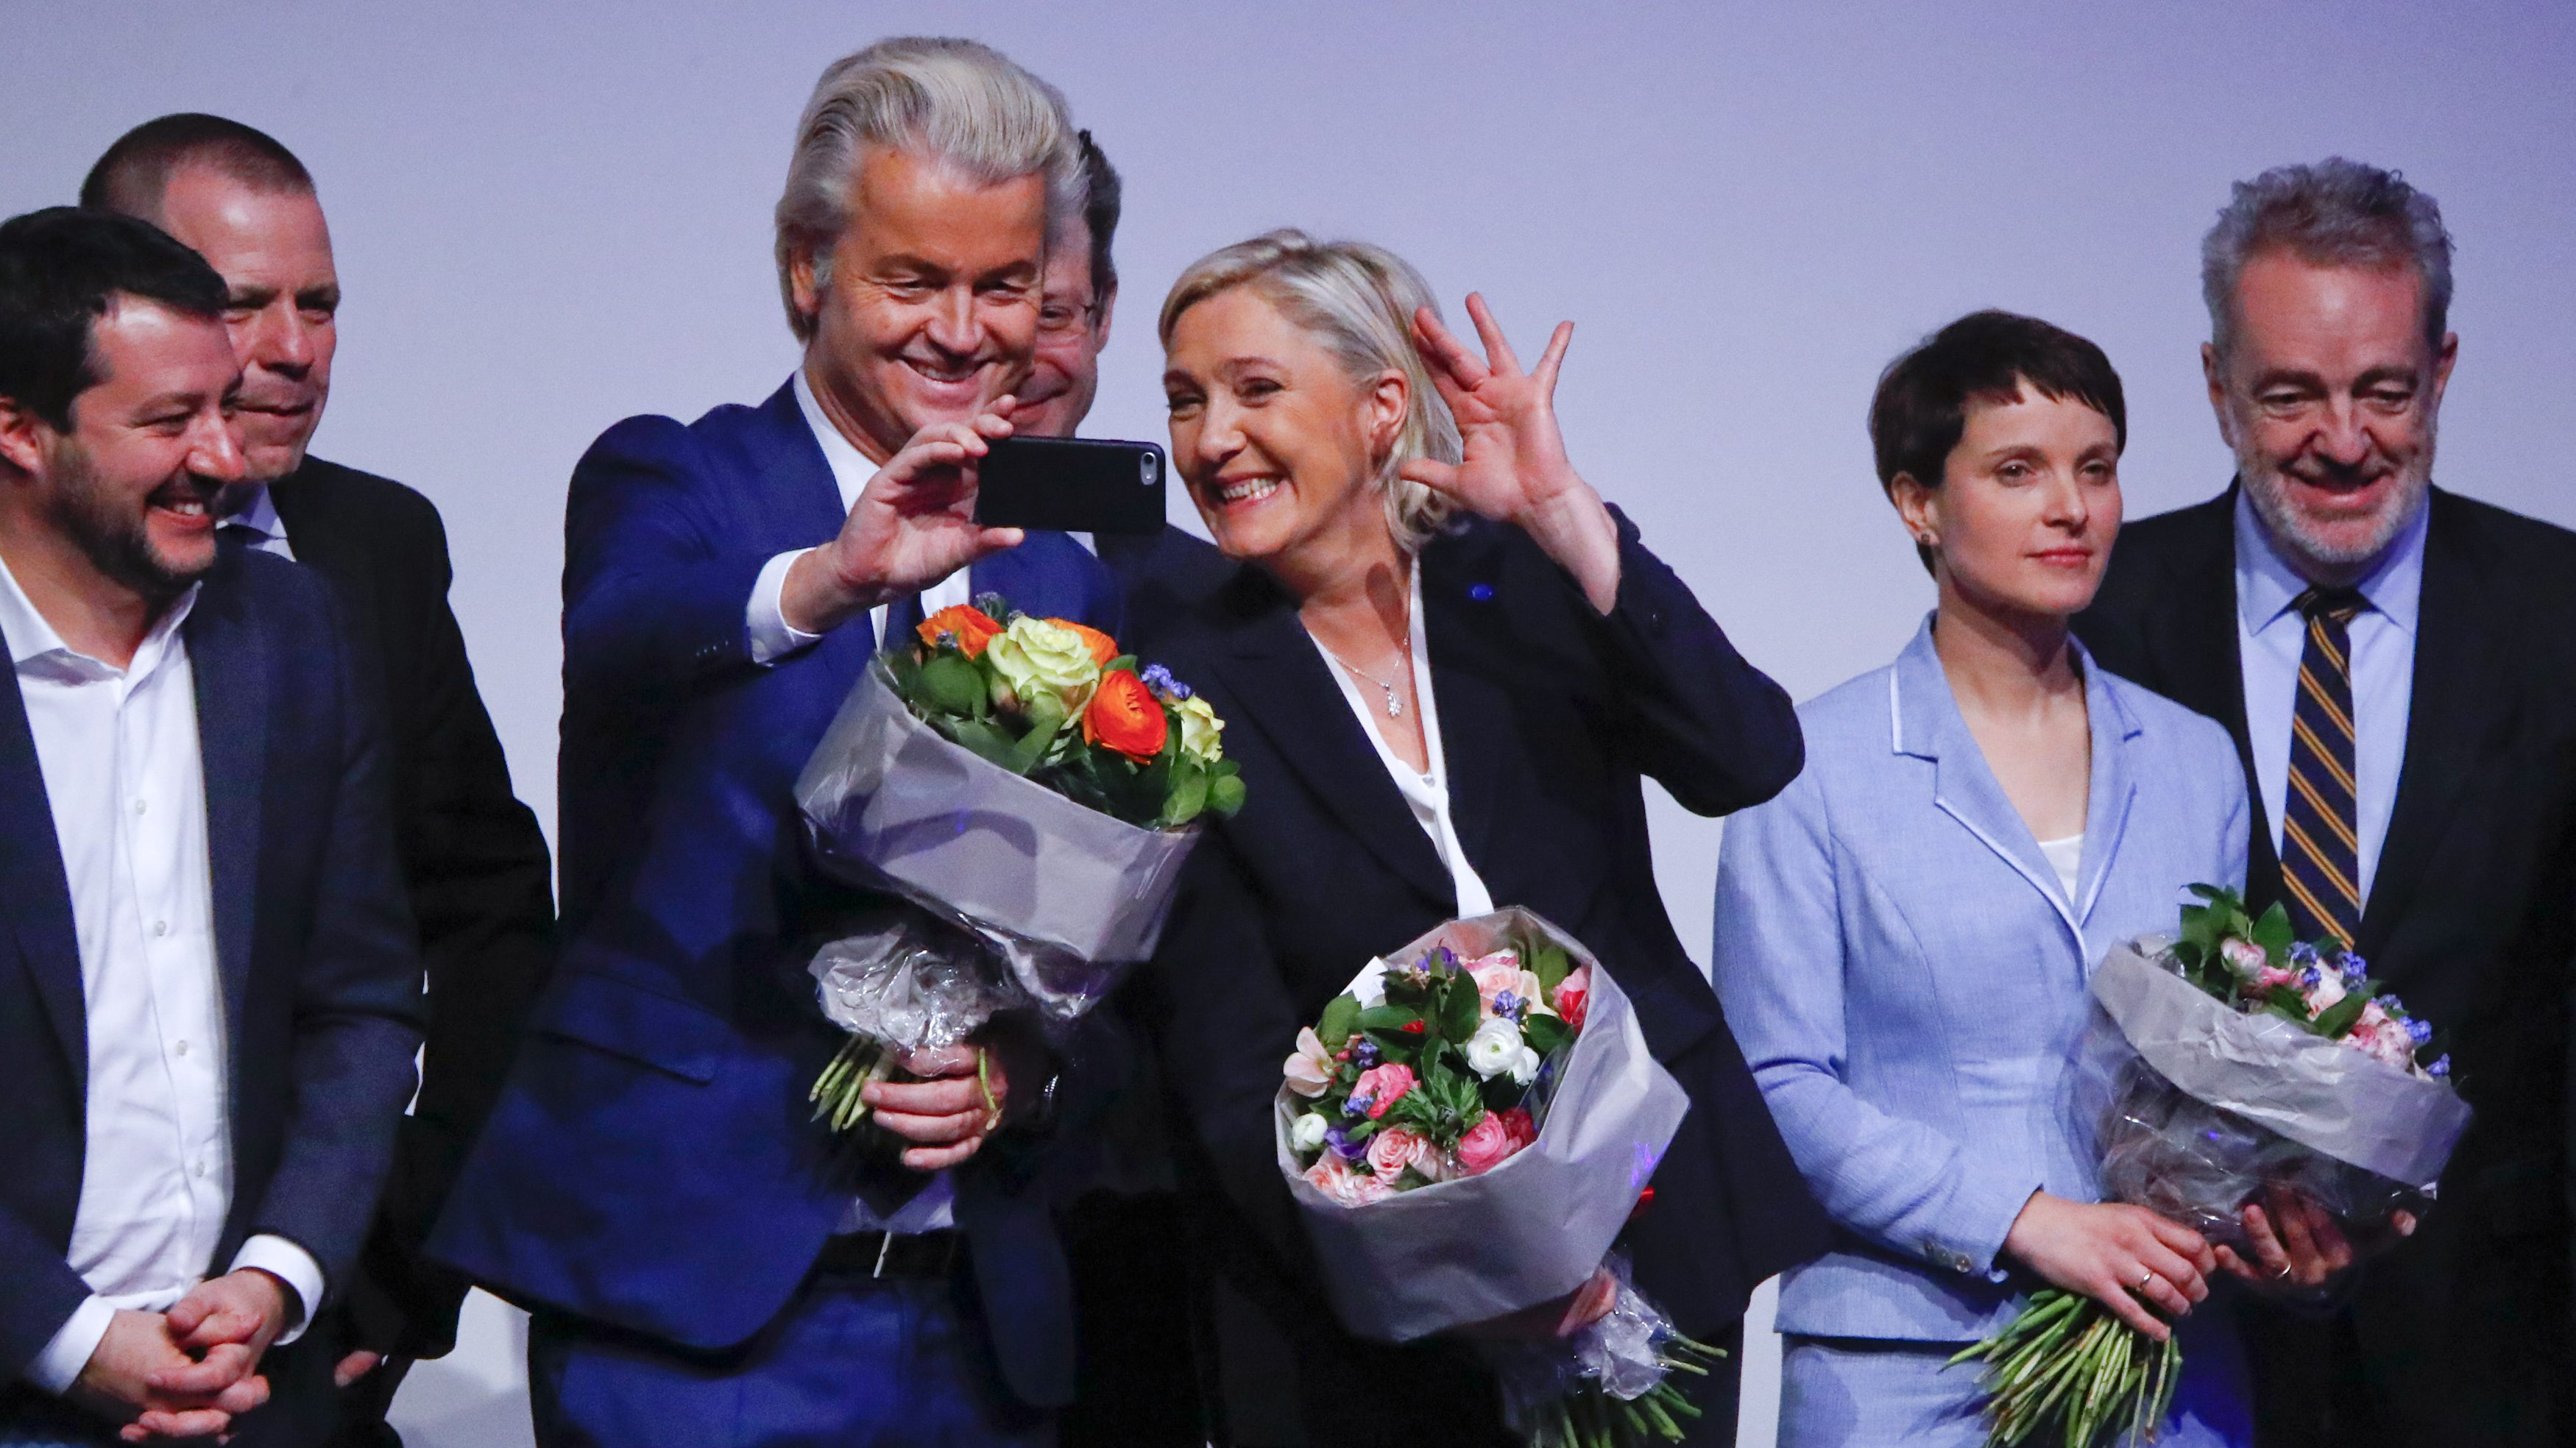 France's National Front leader Marine Le Pen and Netherlands' Party for Freedom (PVV) leader Geert Wilders take a Selfie during a European far-right leaders meeting